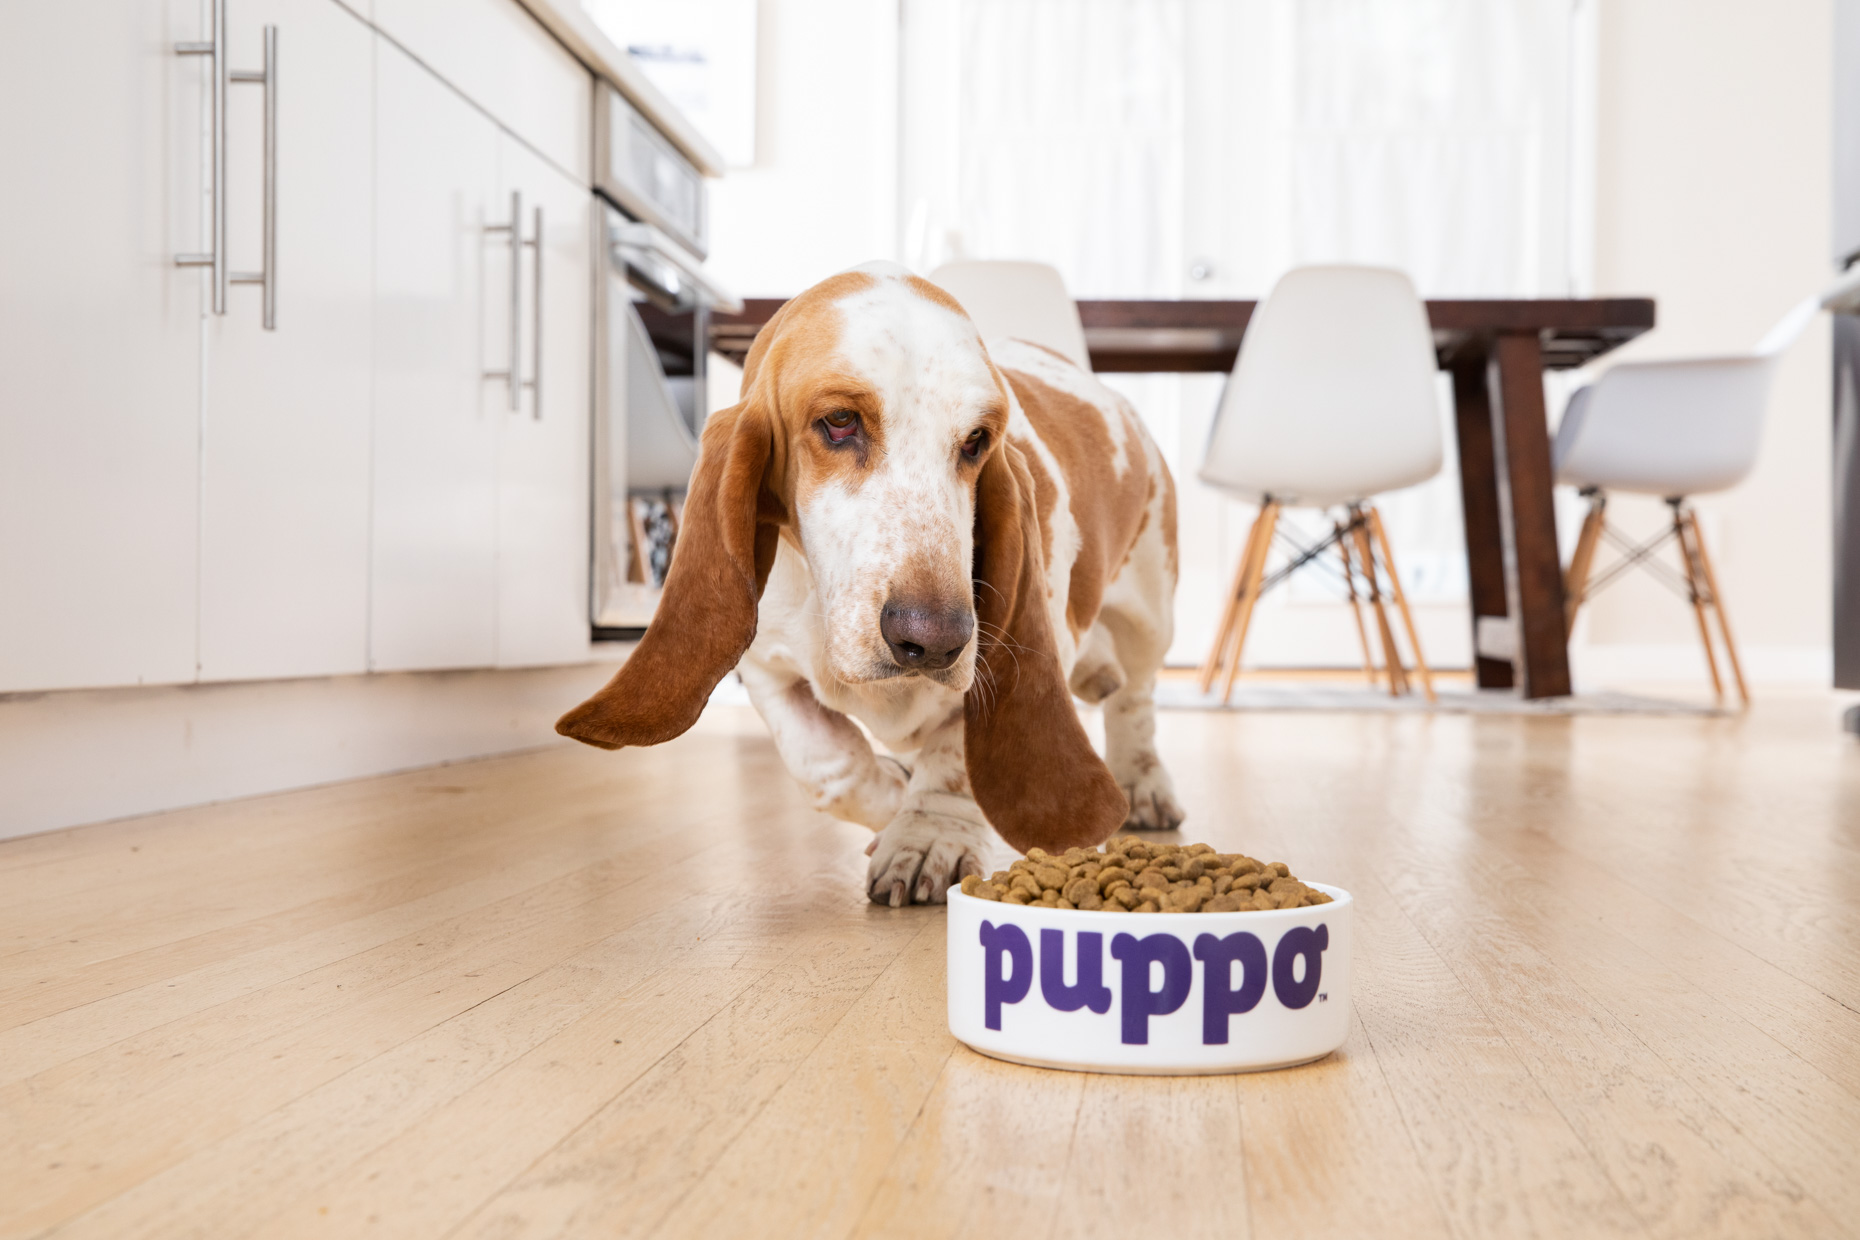 Dog  Photography | Cute Dog and Food Bowl by Mark Rogers